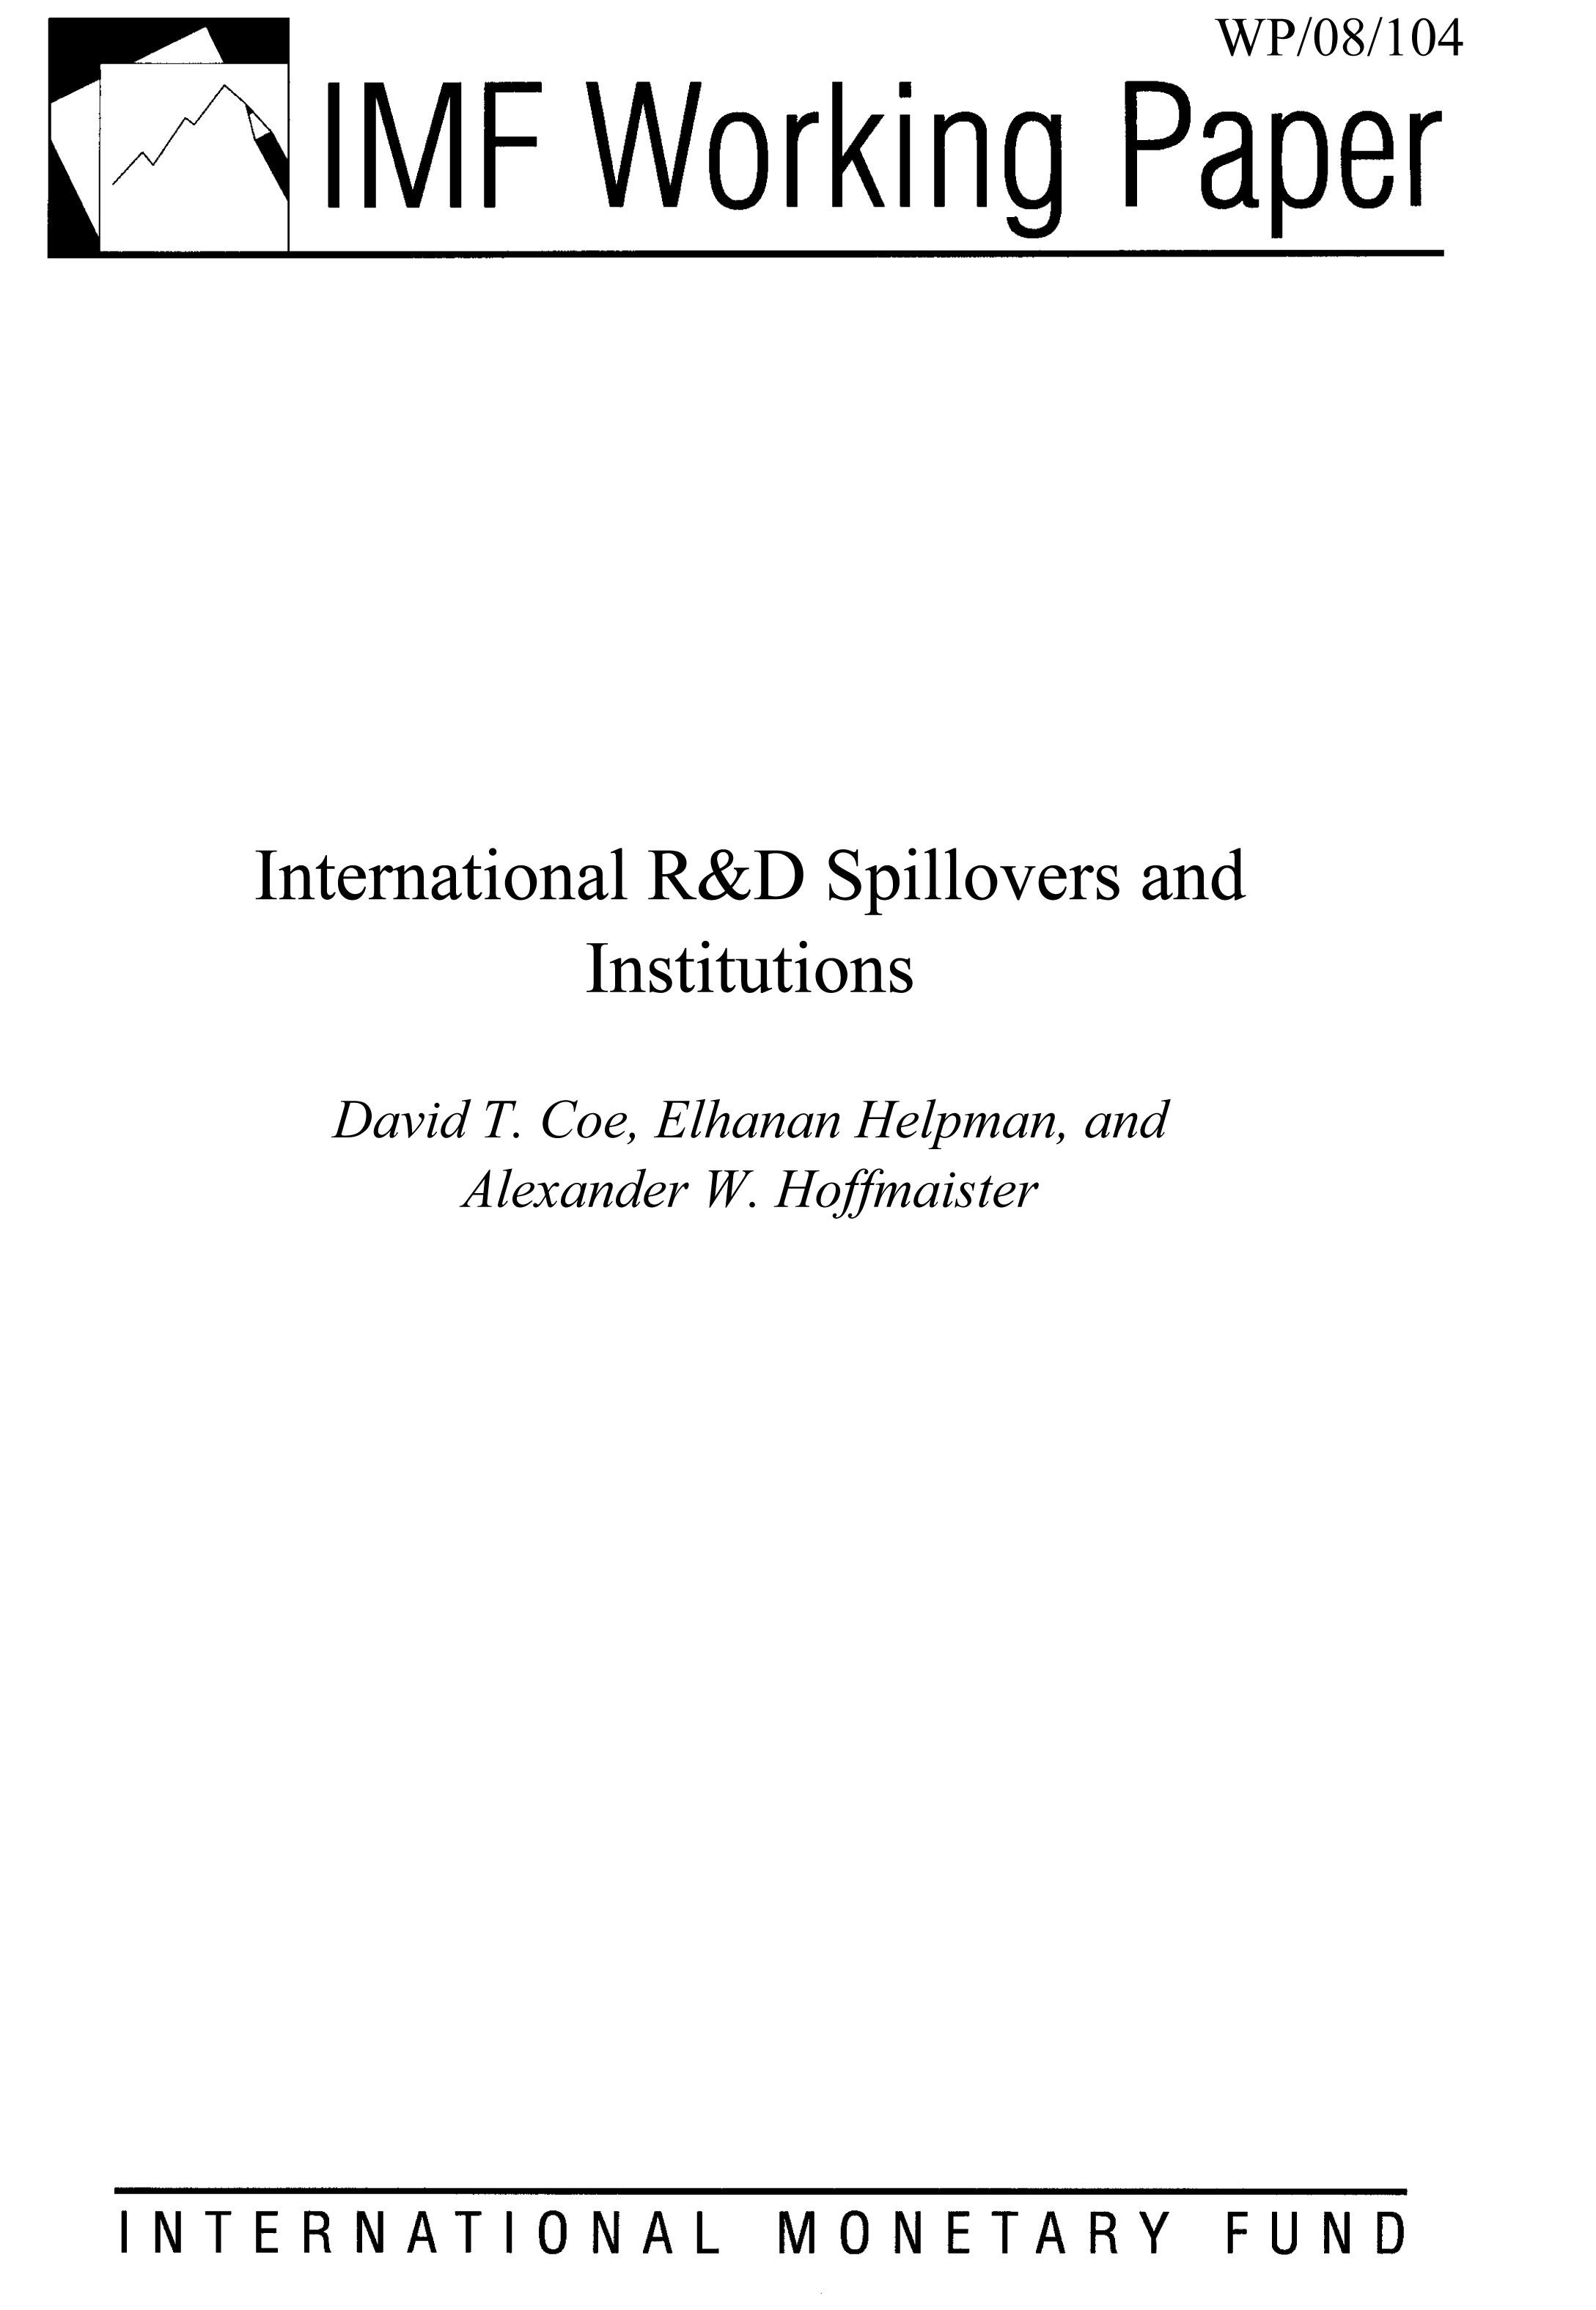 International R&D Spillovers and Institutions